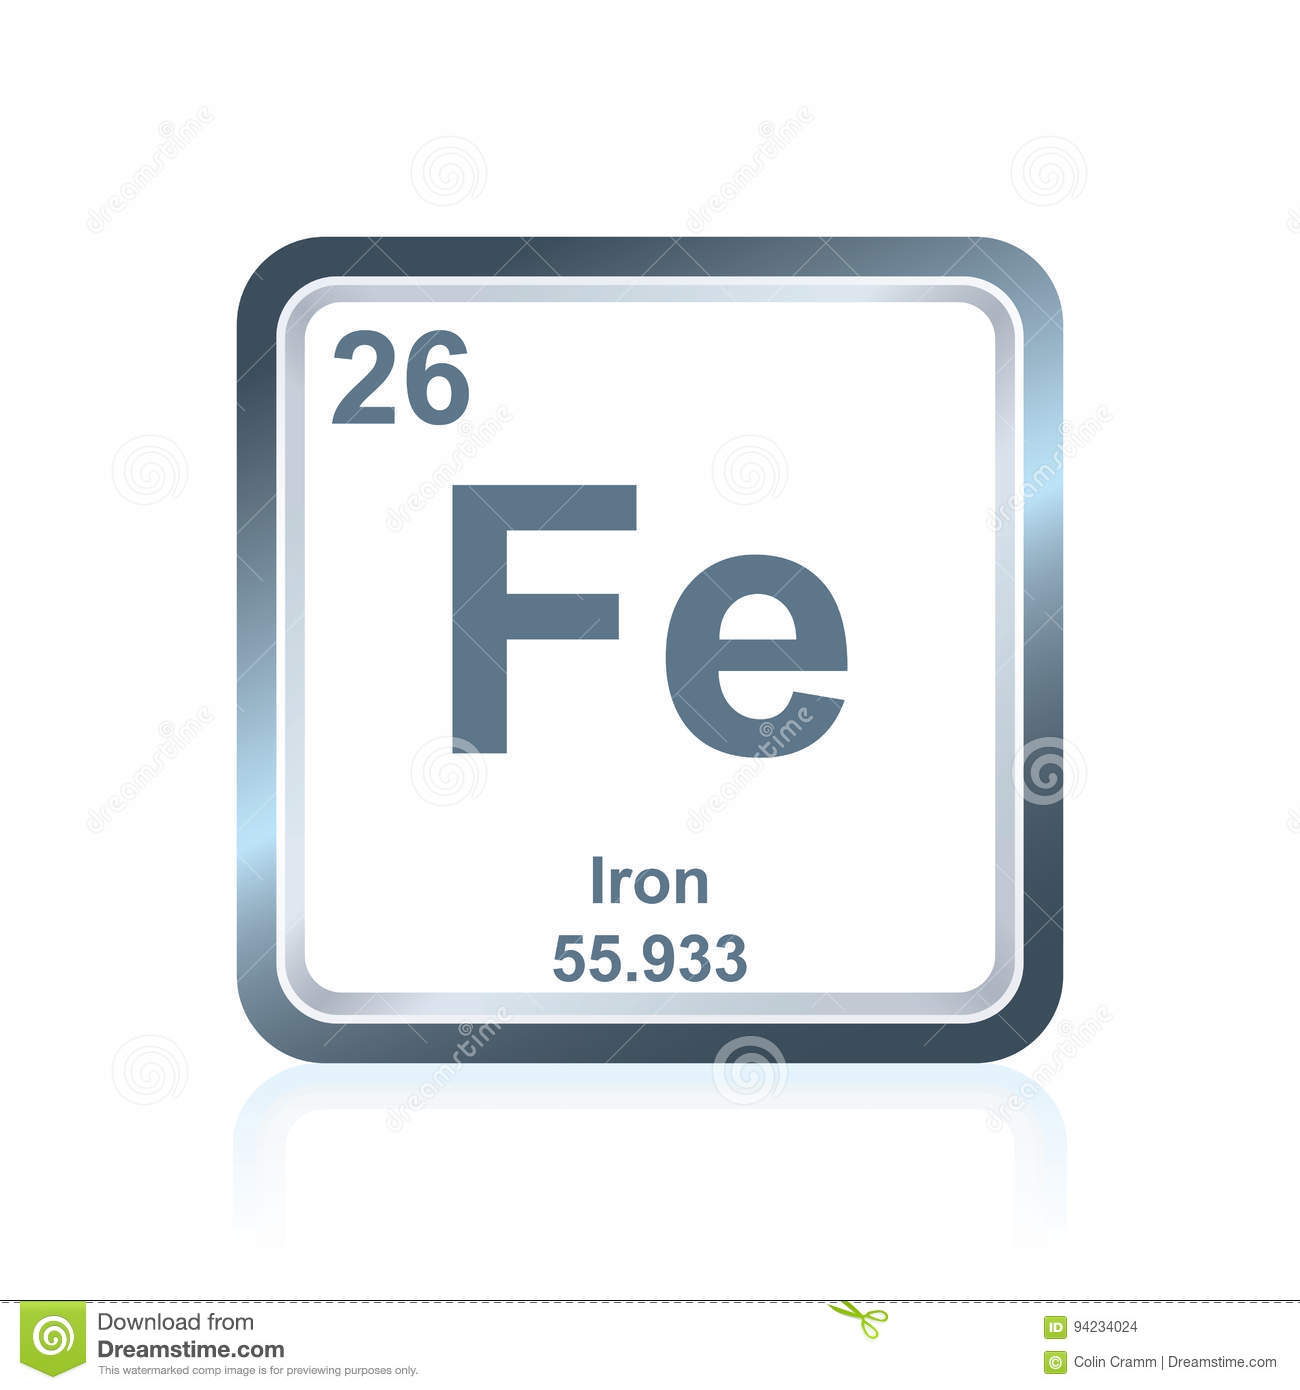 Iron symbol in periodic table image collections periodic table chemical element iron from the periodic table stock illustration chemical element iron from the periodic table gamestrikefo Choice Image